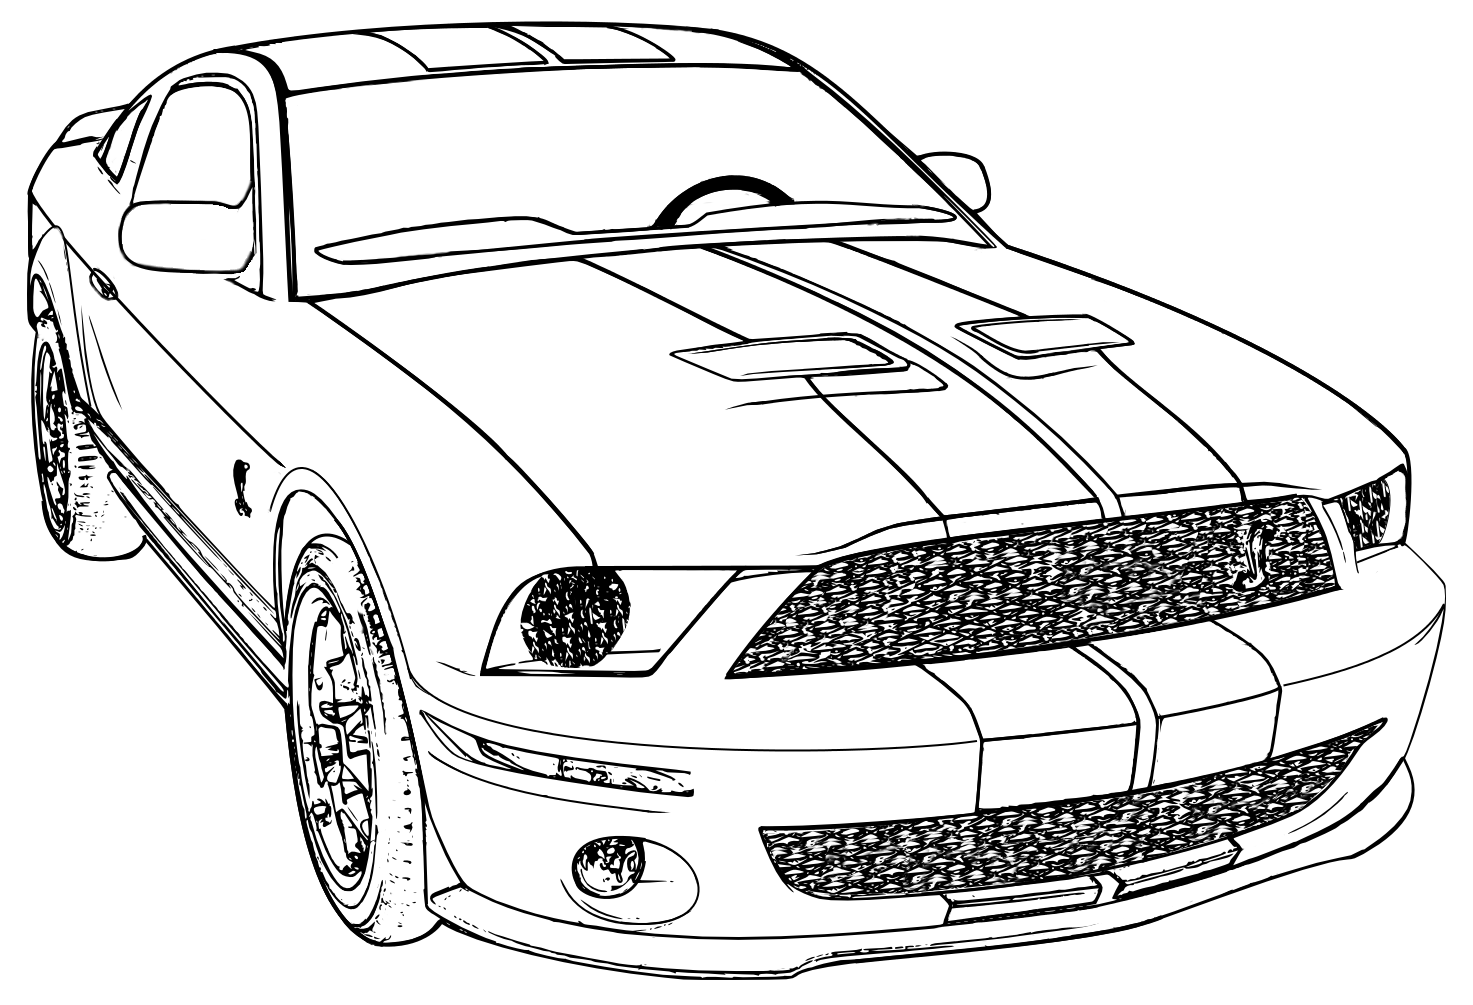 Printable Mustang Car Coloring Pages - High Quality Coloring Pages